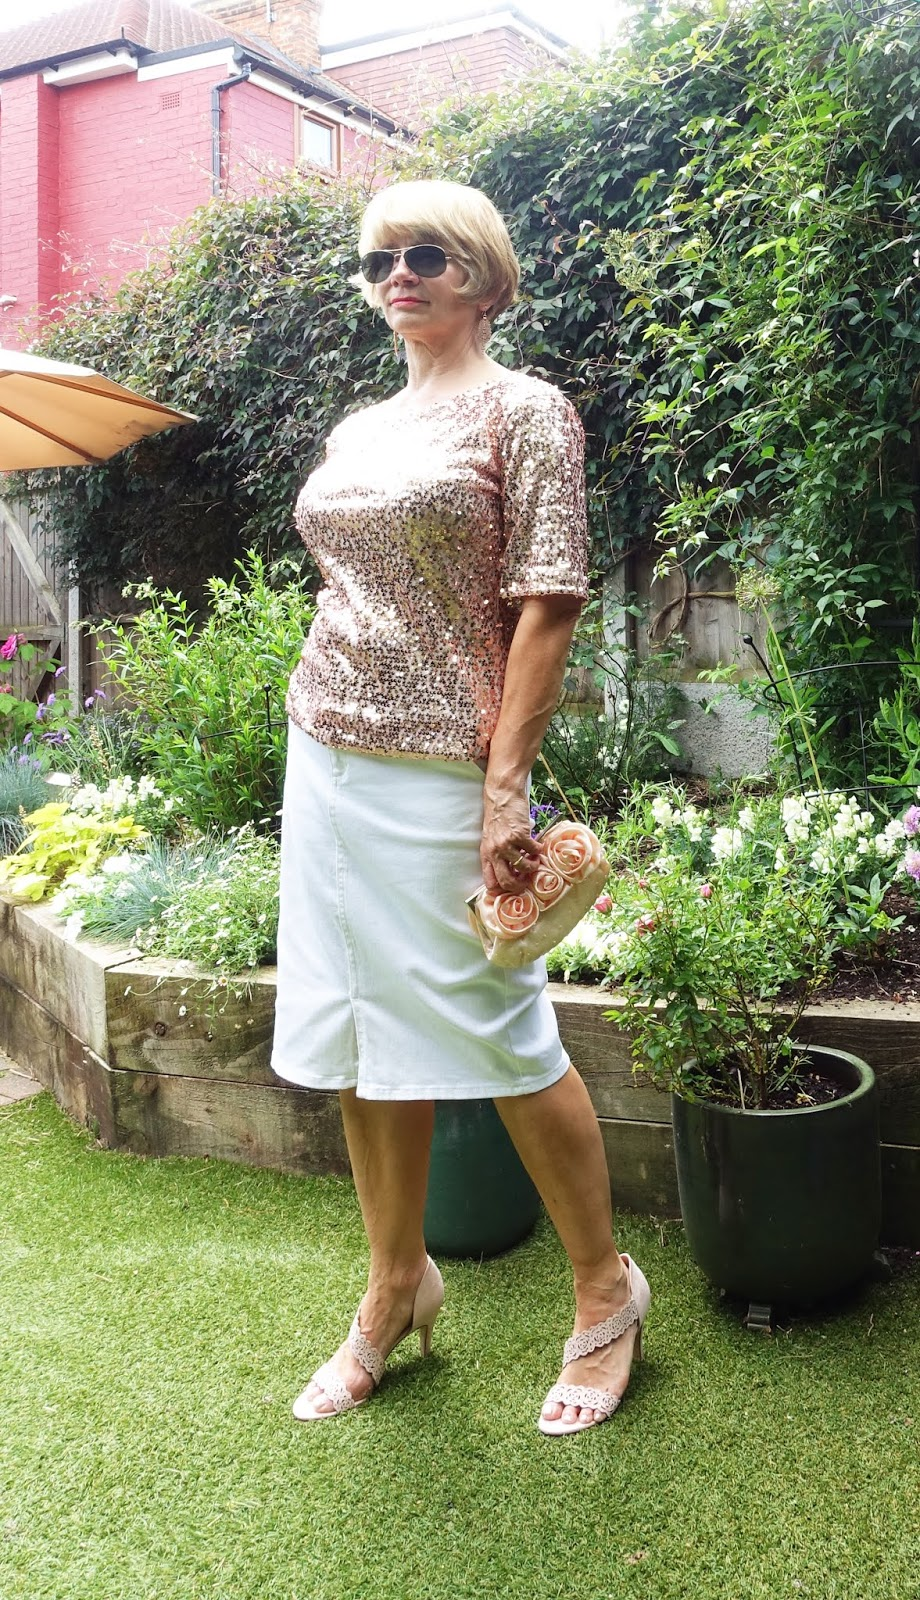 Image showing Is This Mutton? blogger wearing a rose gold sequin top and white denim skirt